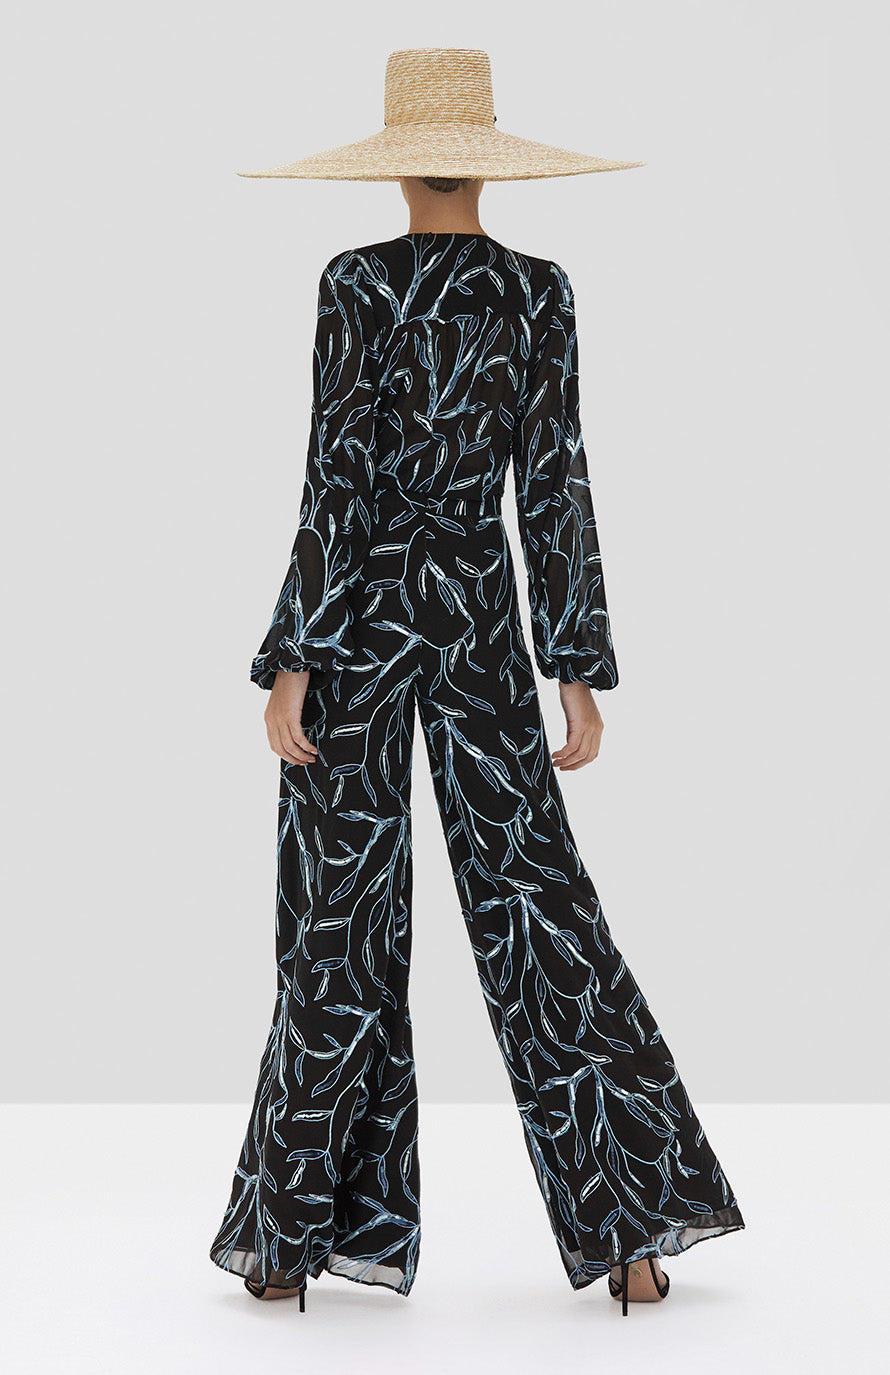 Alexis Fallen Pant and Valez Top in Black Sequin Embroidery from Spring Summer 2020 - Rear View